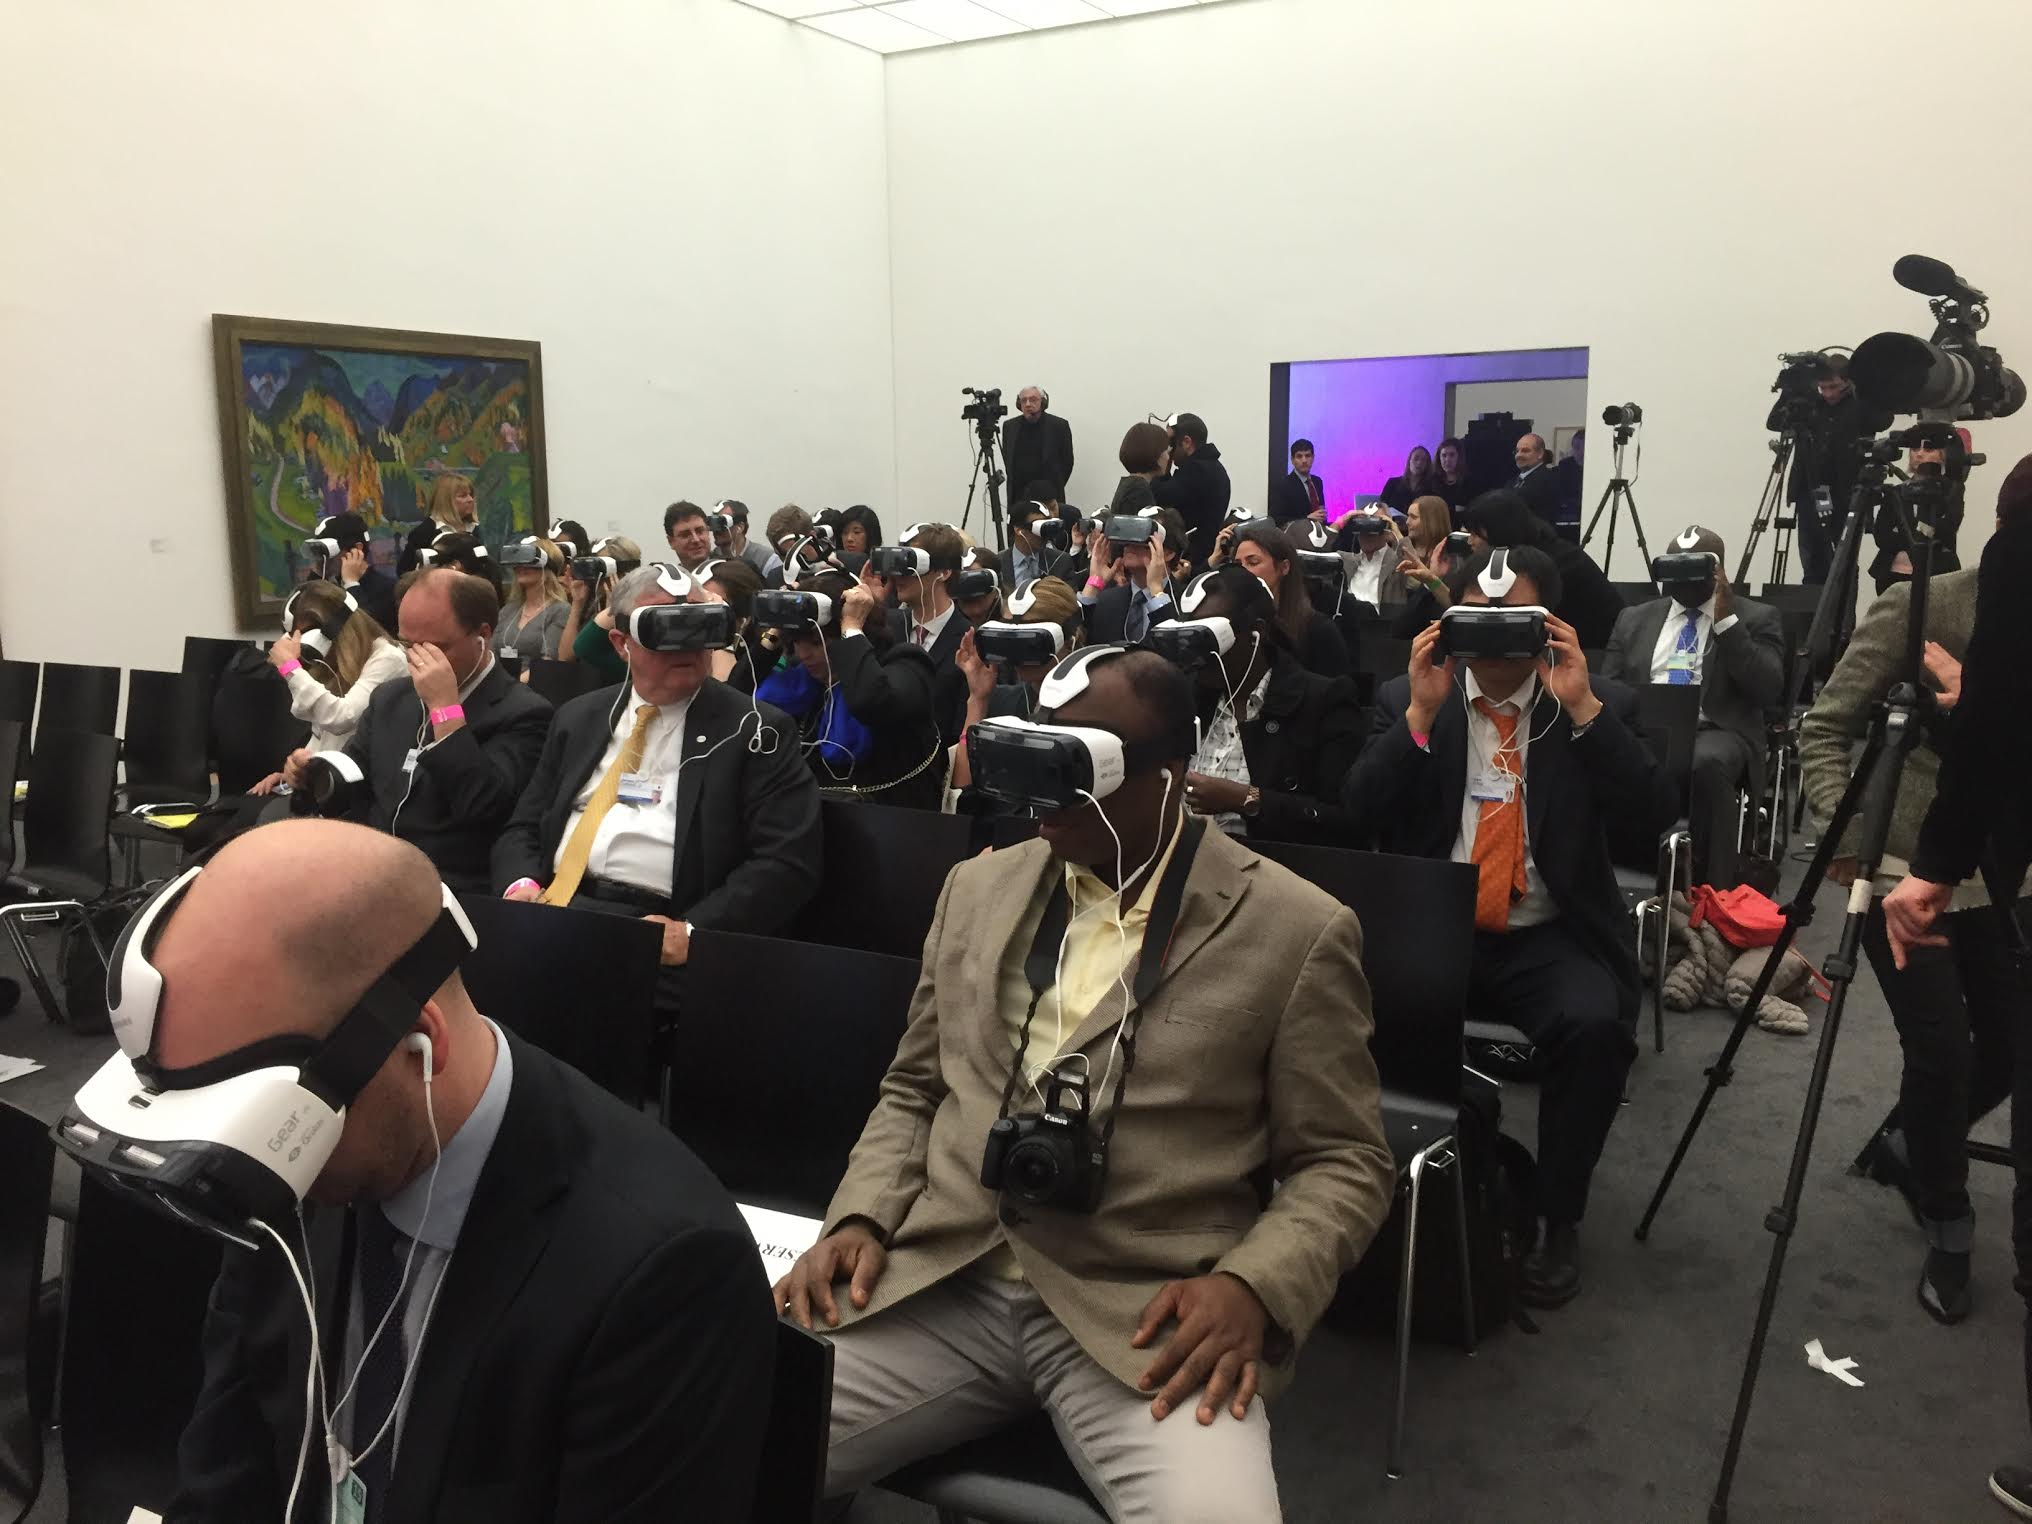 virtual reality headsets on World Economic Forum attendees